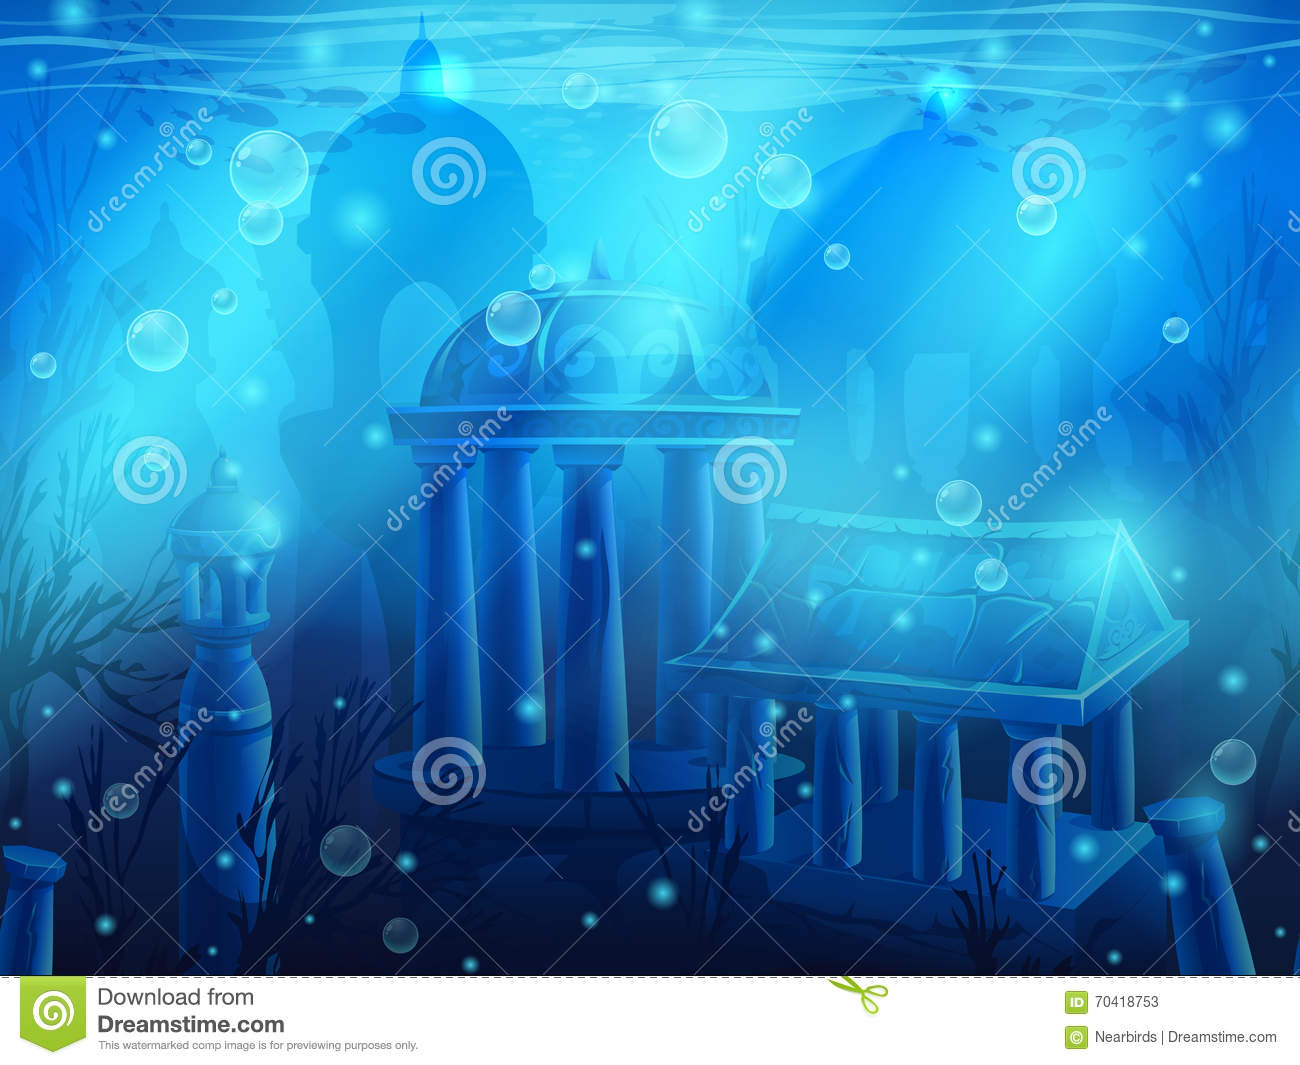 Atlantis. Seamless submerged underwater city, the ancient ruins